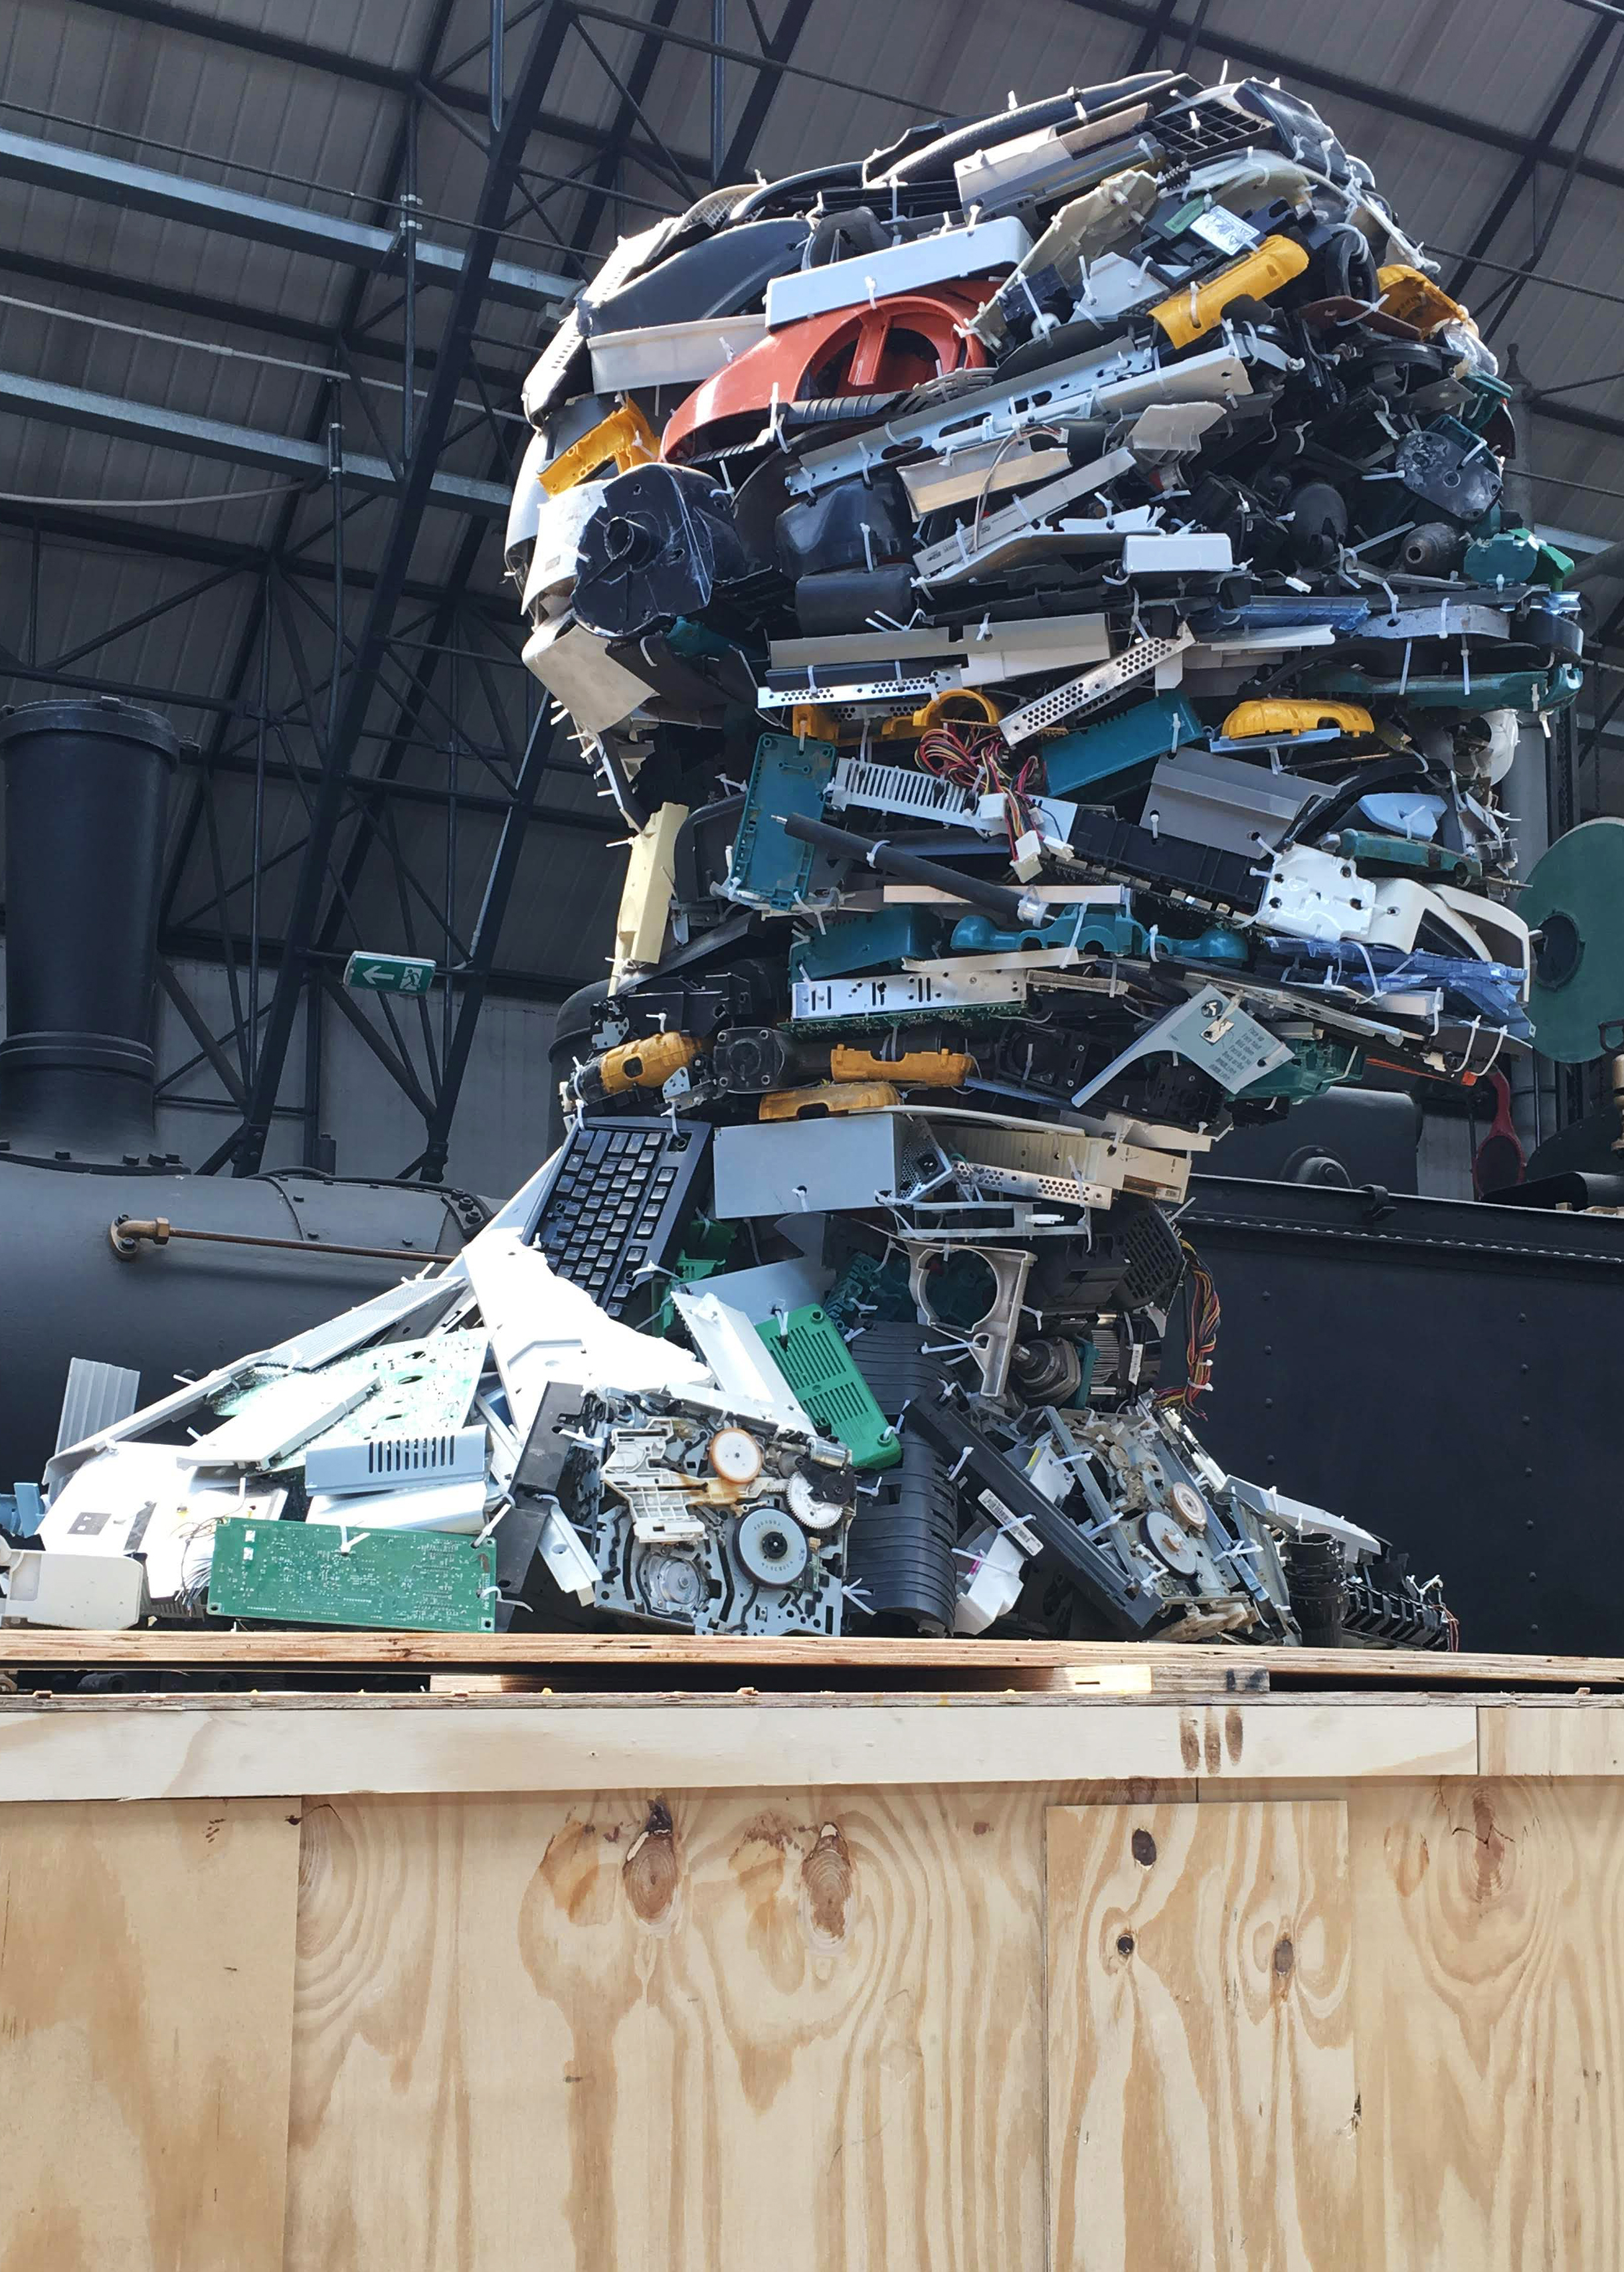 The Electronic man, a human bust made assembling electronic waste.